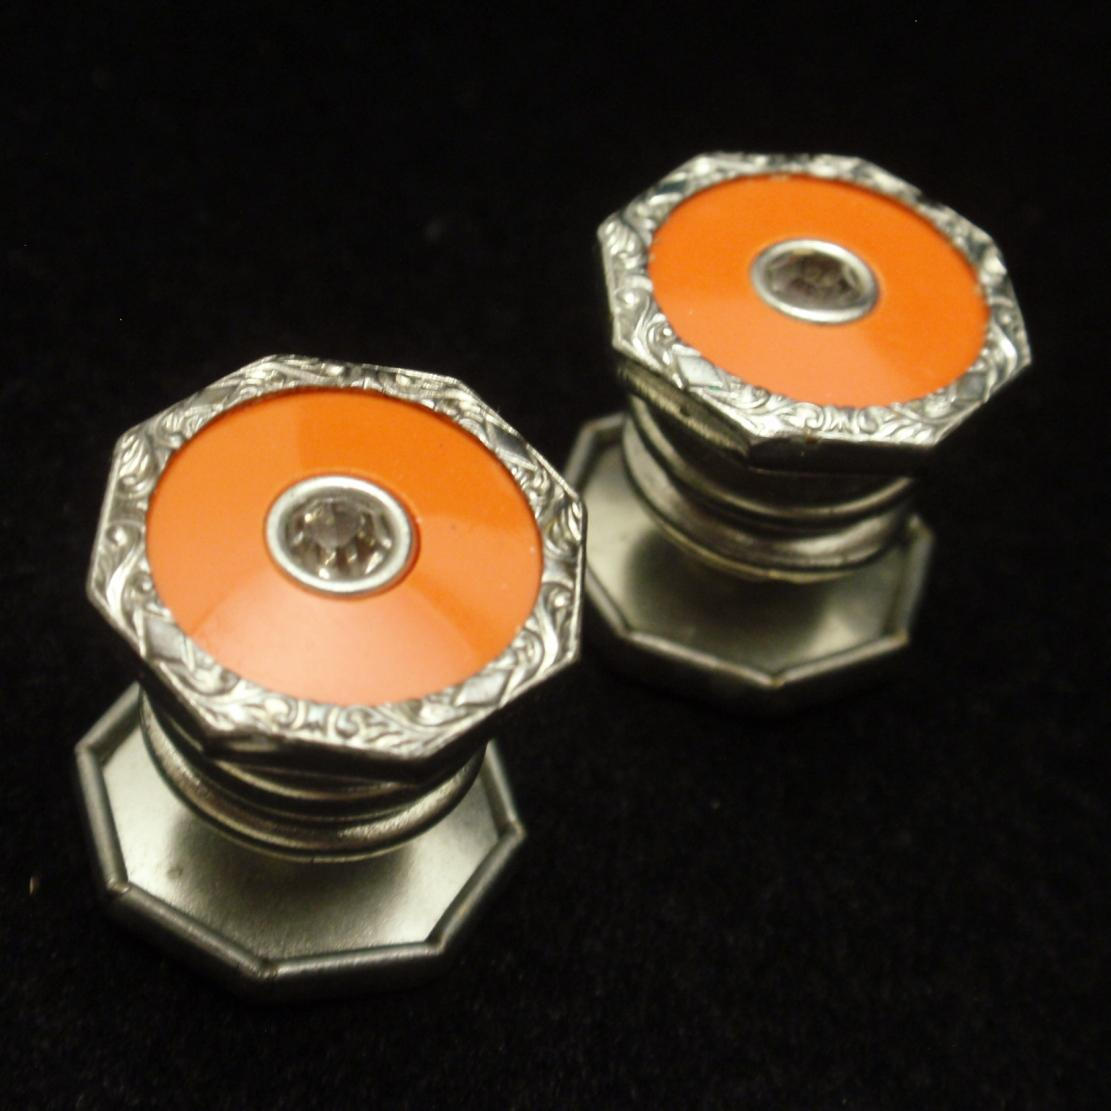 Orange Enamel Snap Together Cuff Links Vintage